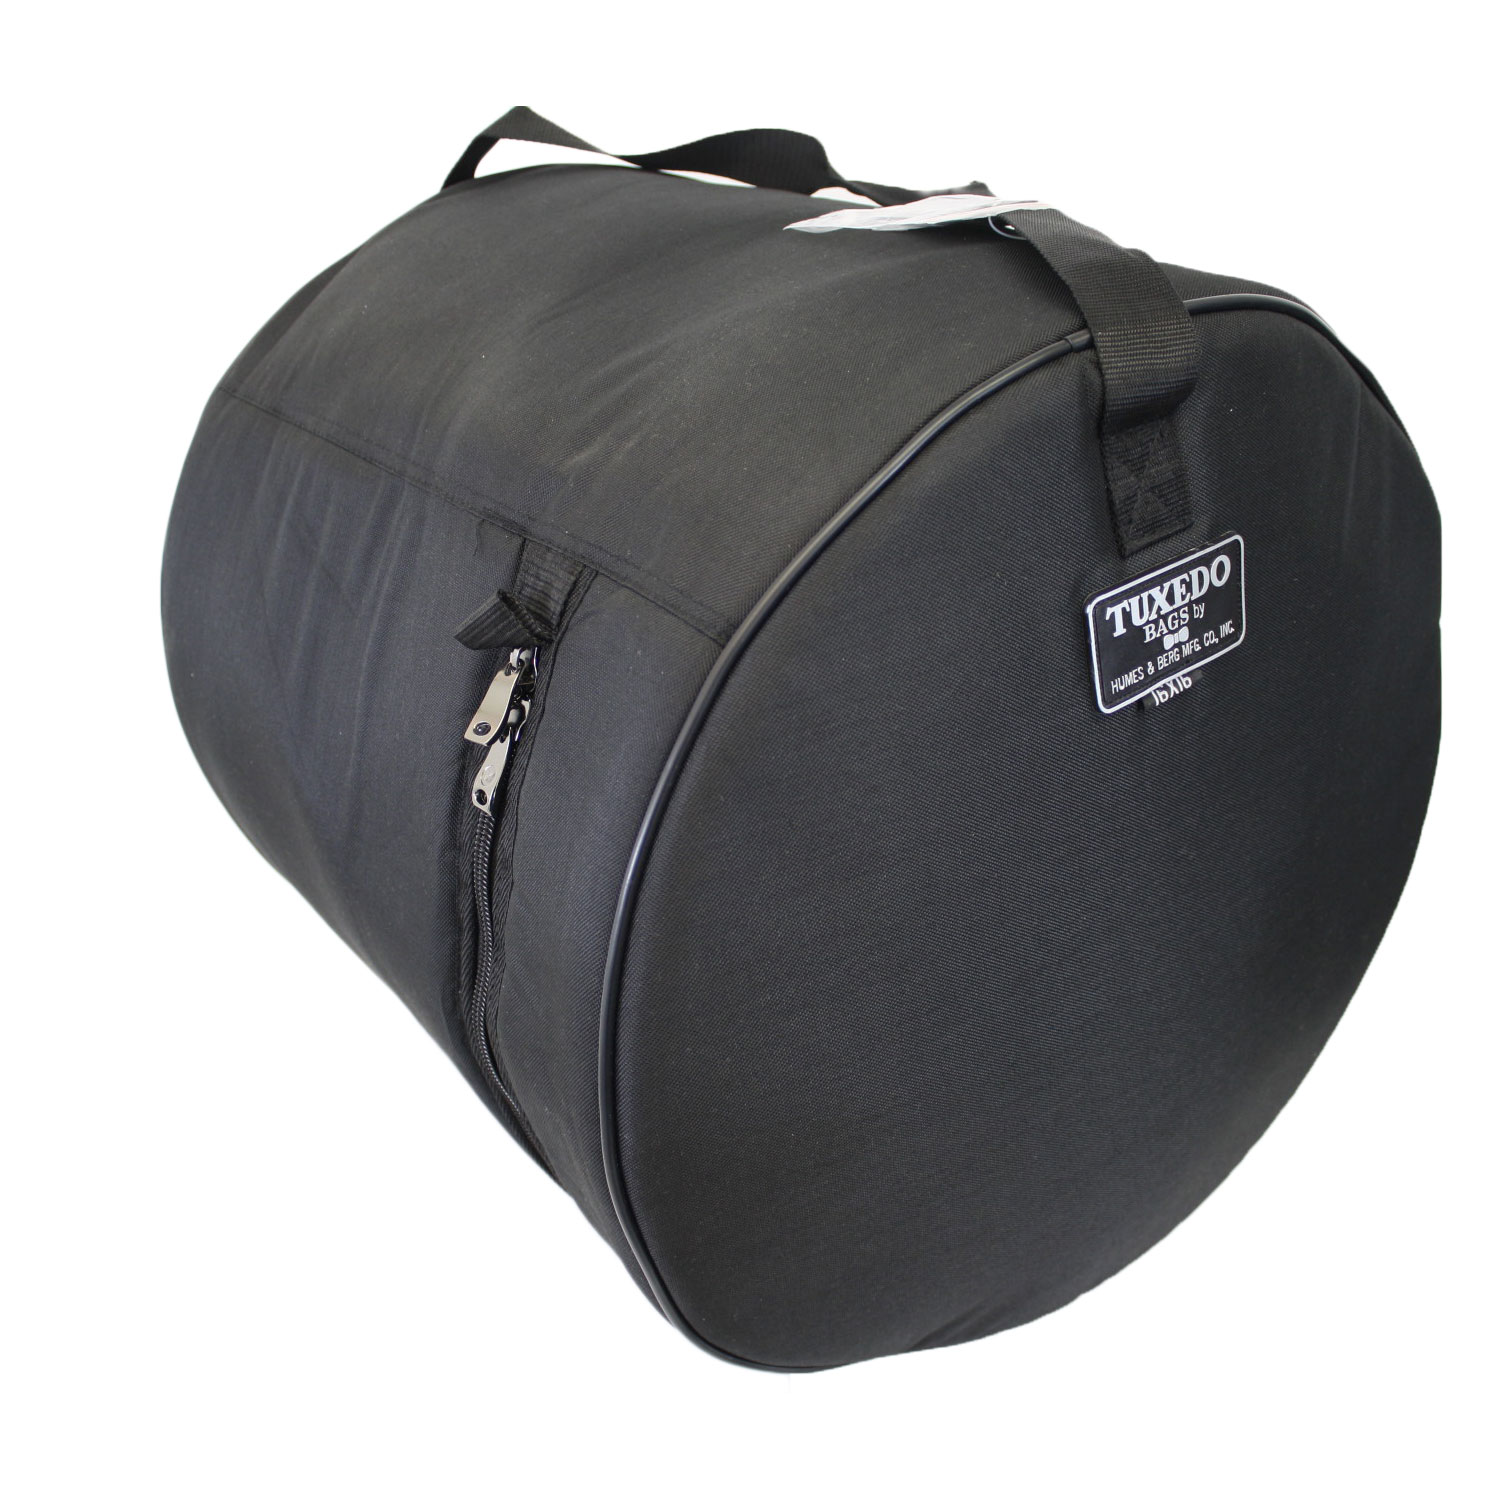 "Humes & Berg 14"" (Deep) x 14"" (Diameter) Tuxedo Floor Tom Bag/Soft Case"